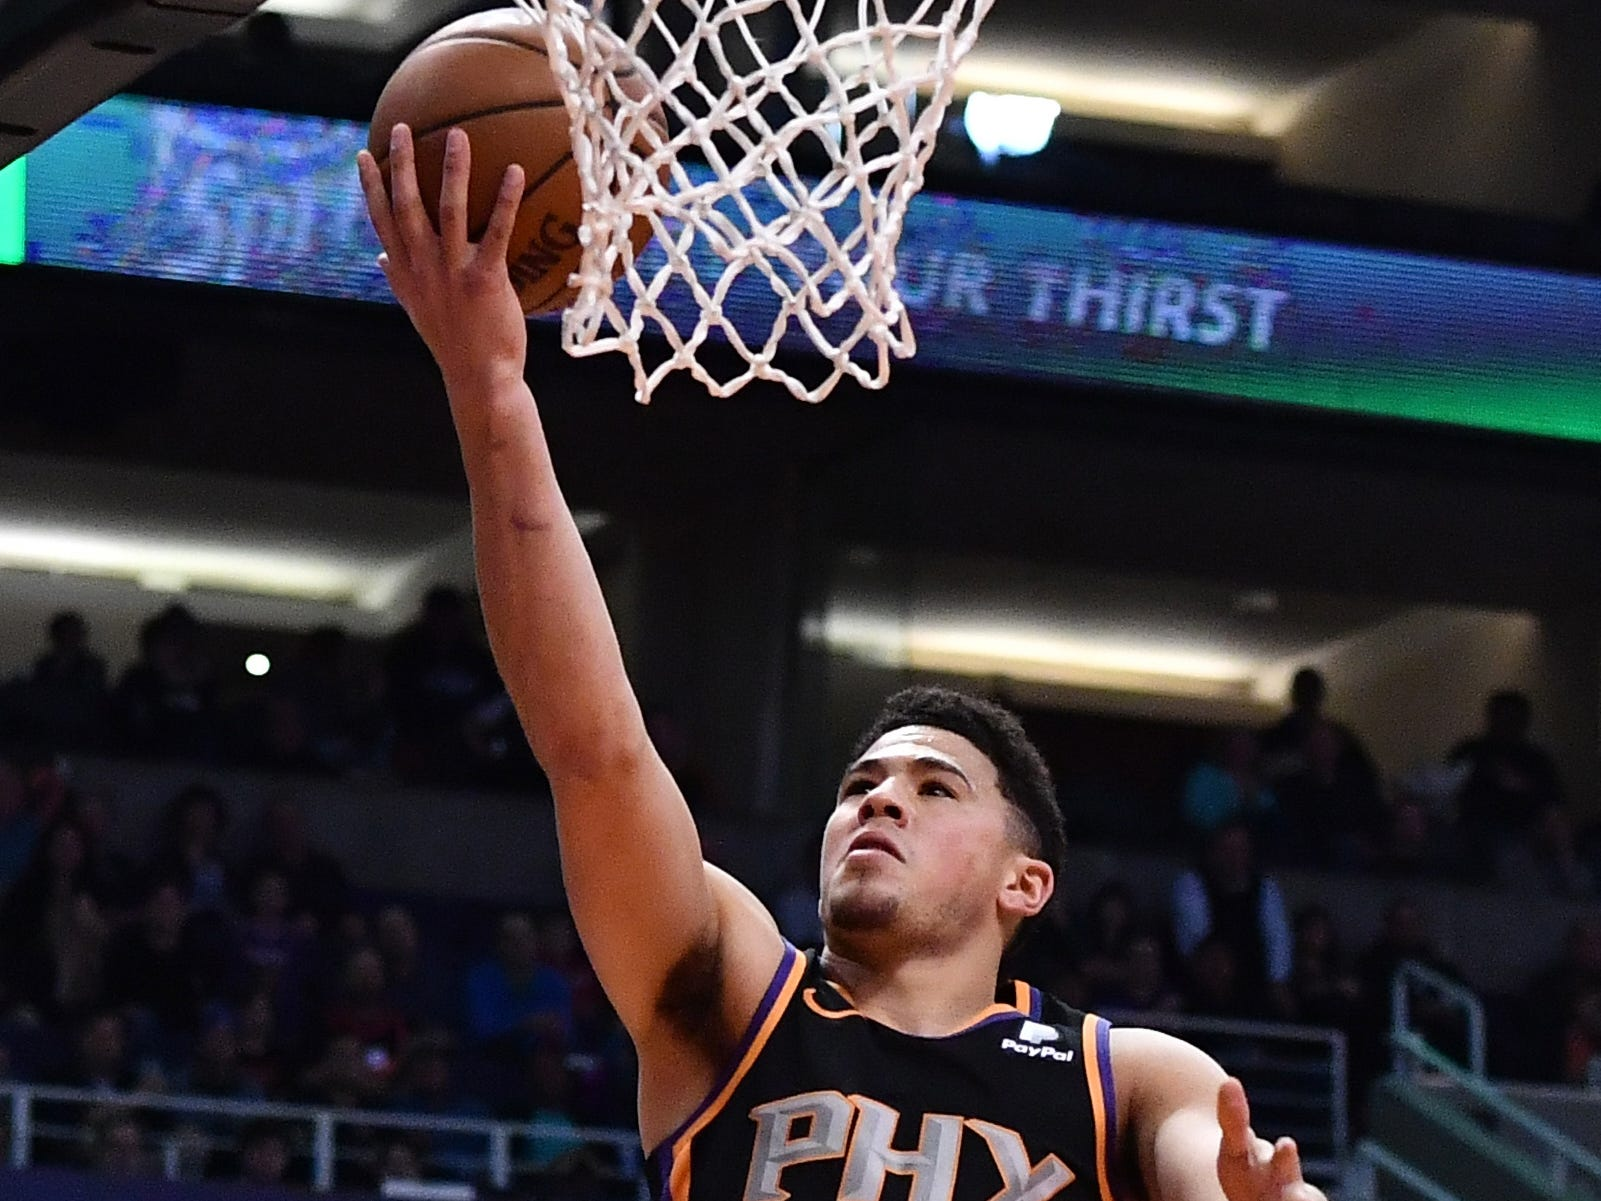 Jan 4, 2019; Phoenix, AZ, USA; Phoenix Suns guard Devin Booker (1) lays up the ball in the first half against the LA Clippers at Talking Stick Resort Arena. Mandatory Credit: Jennifer Stewart-USA TODAY Sports